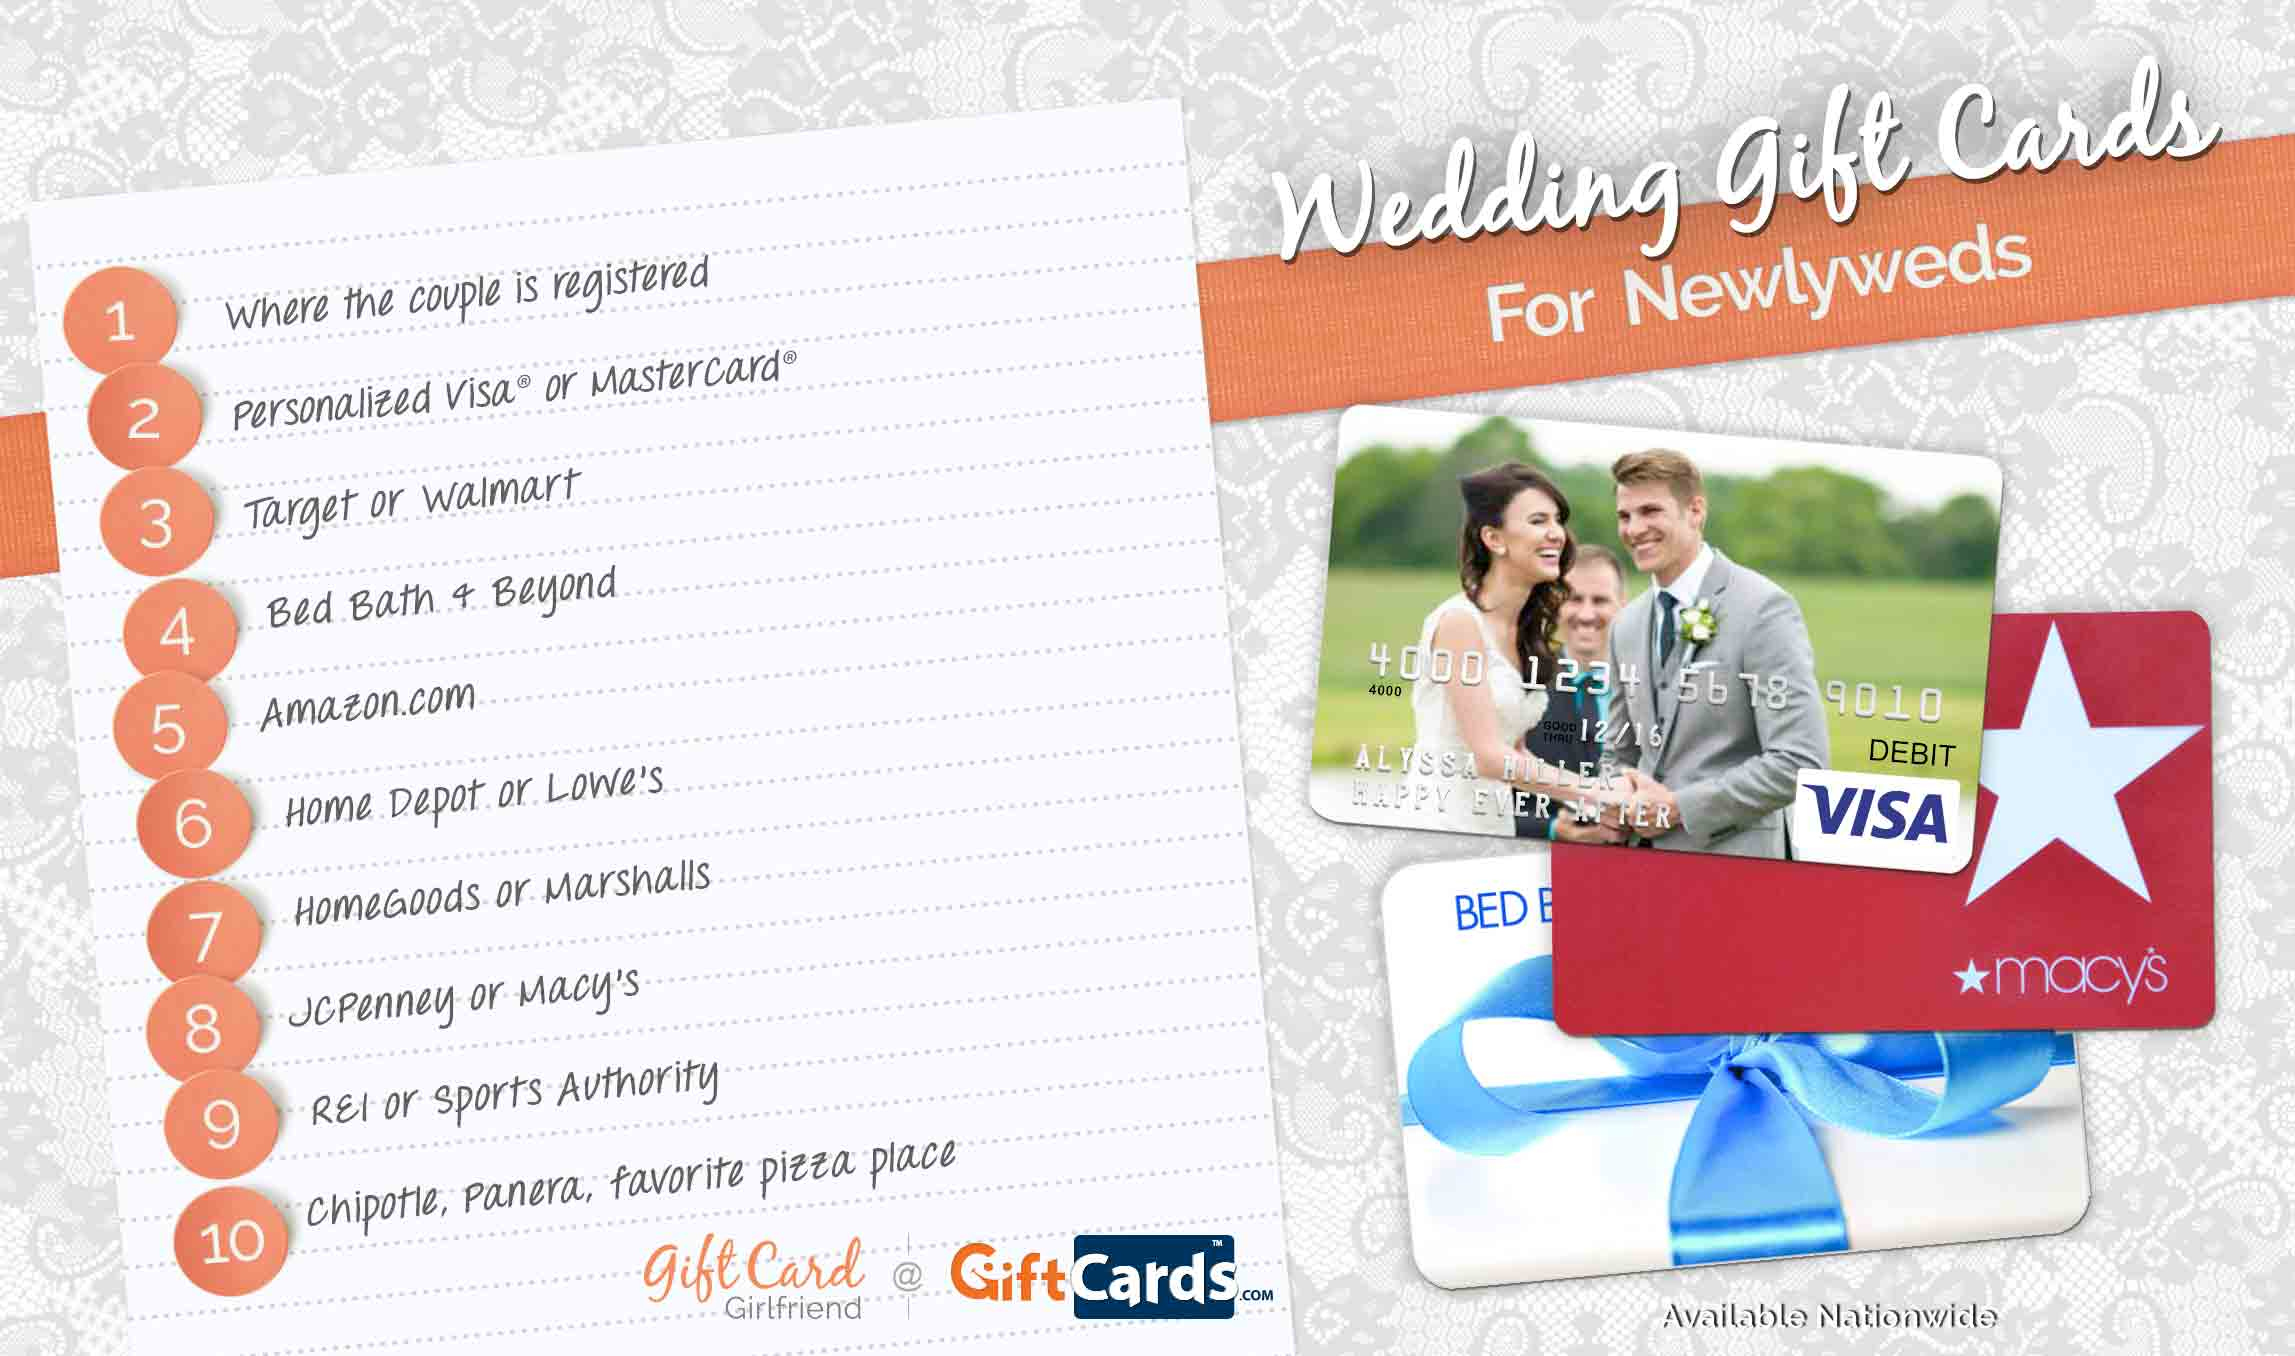 Top 10 Wedding Gift Cards To Buy For Newlyweds Gcg